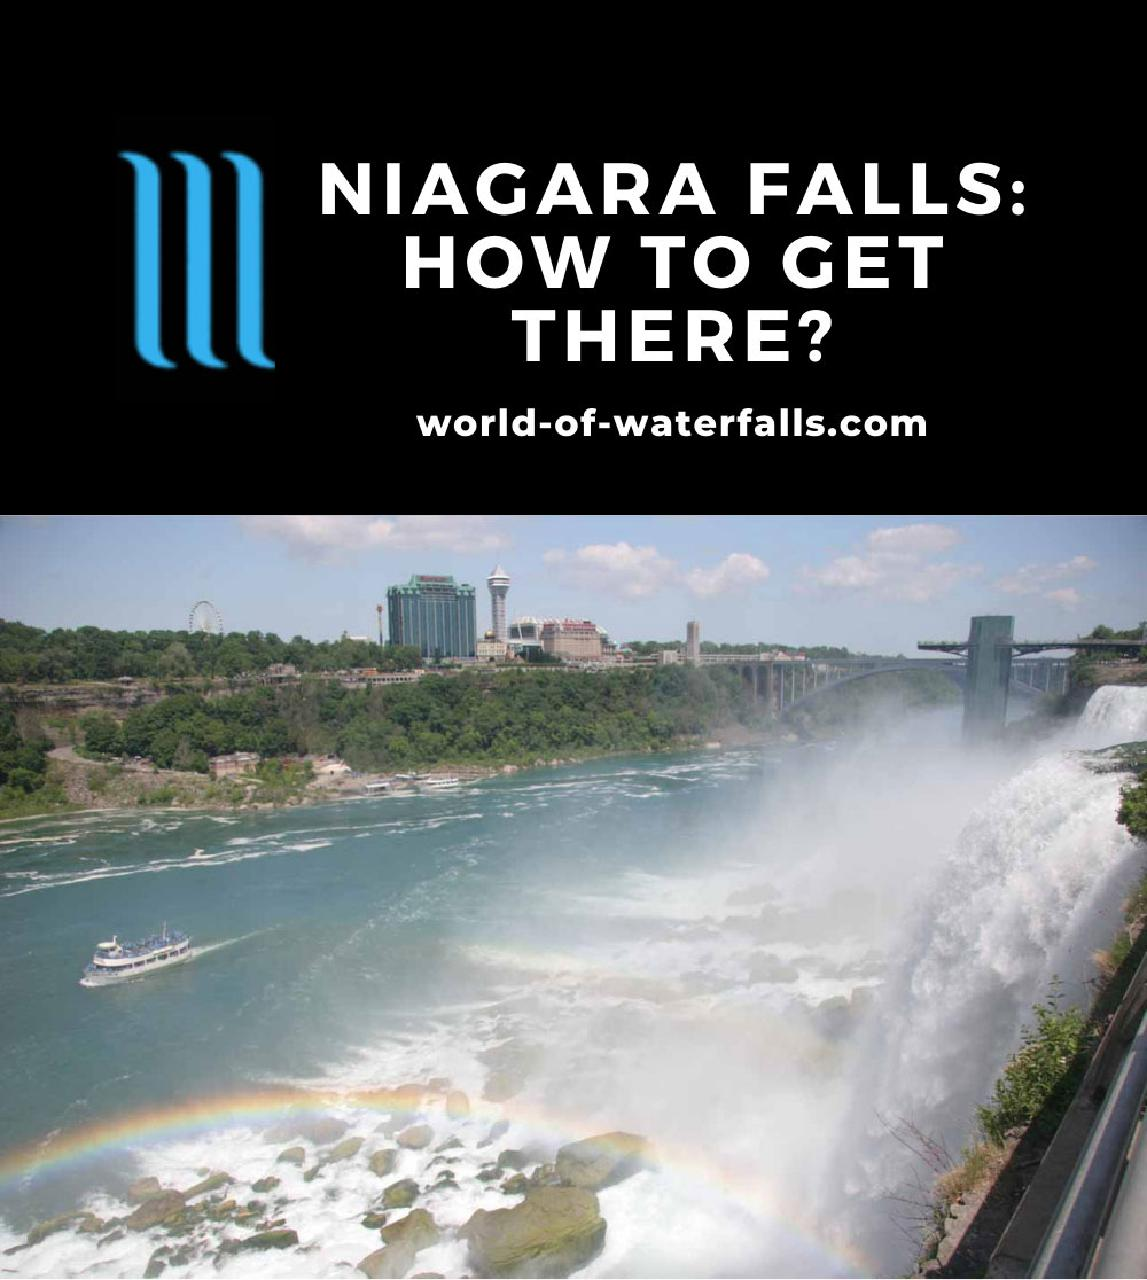 Niagara Falls: How to Get There?